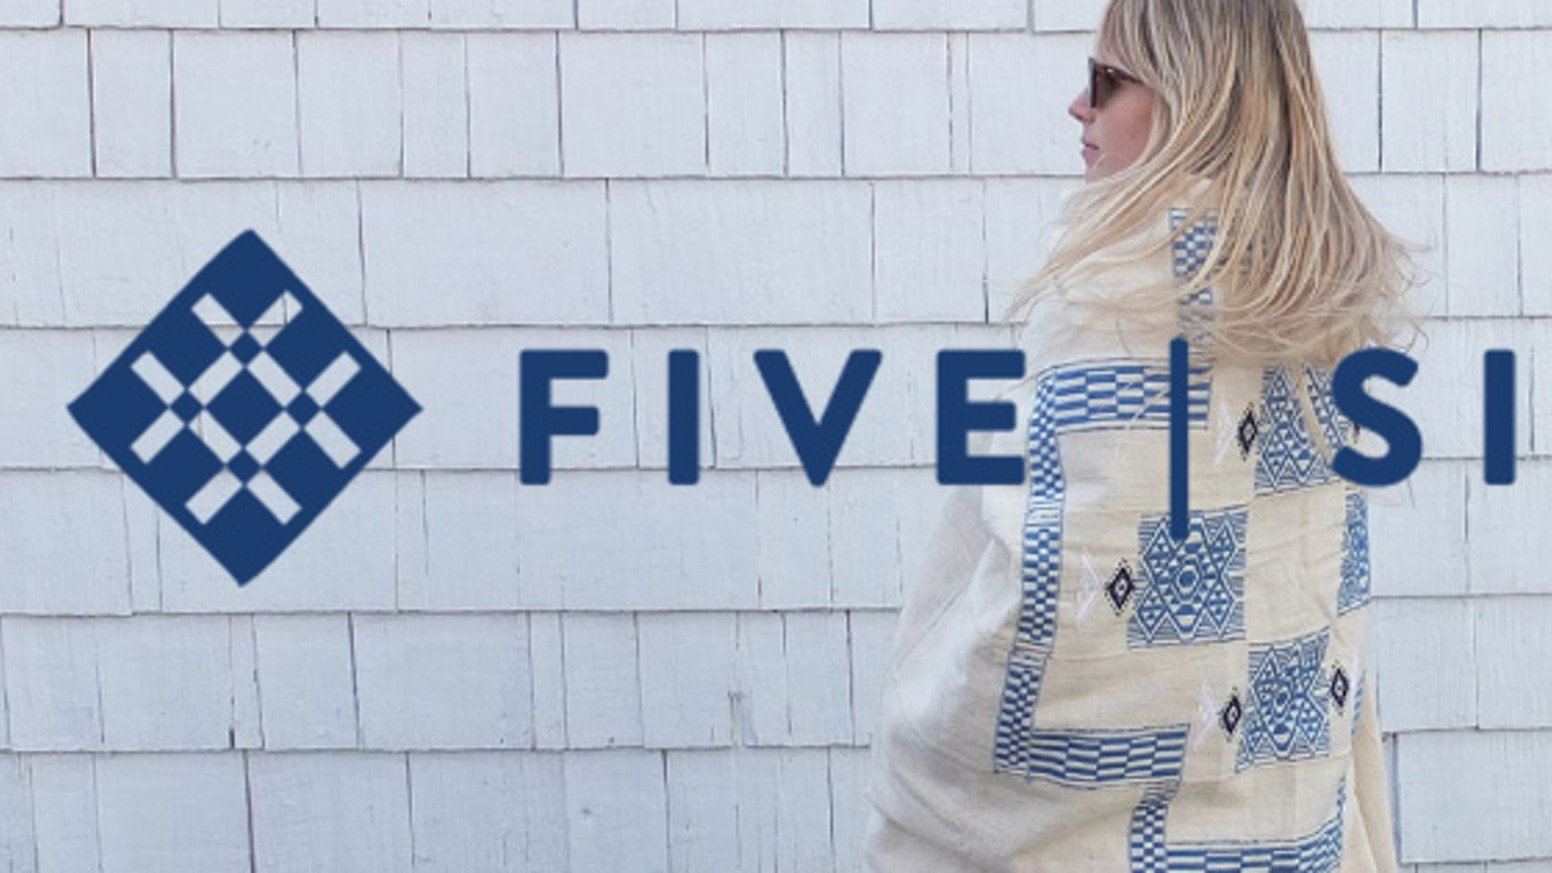 Mindfully crafted textiles to support artisans and their families.